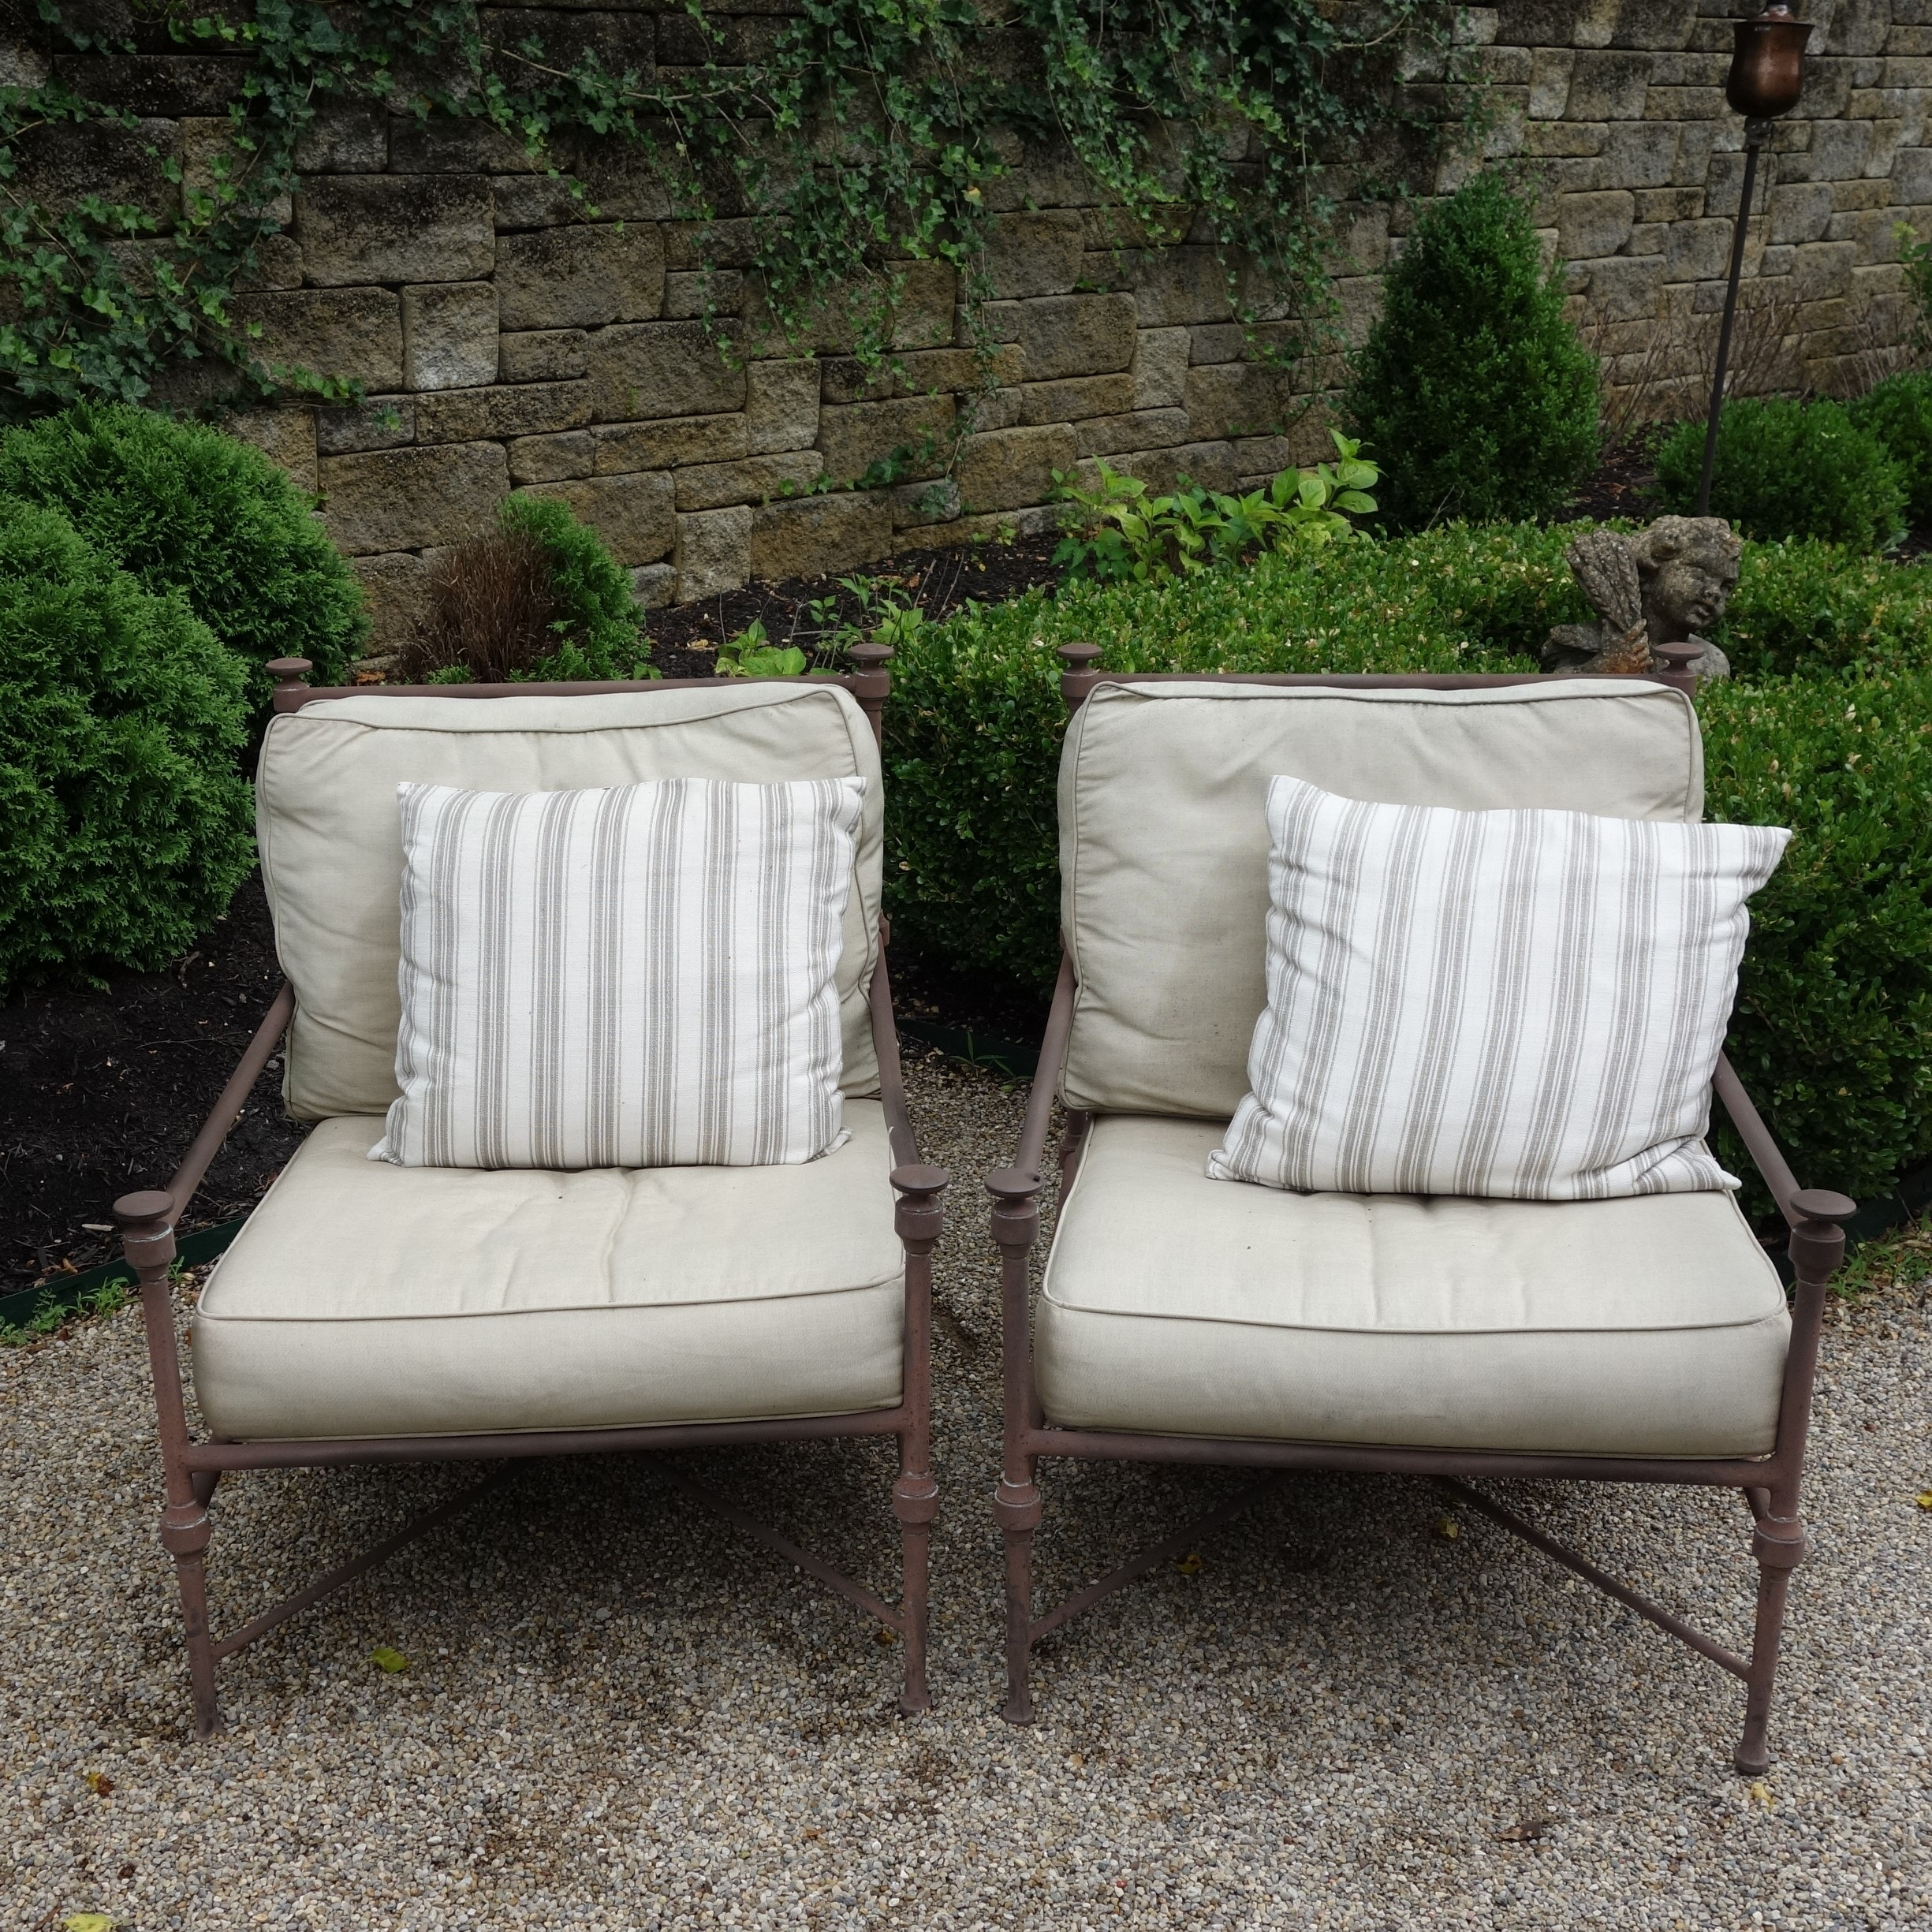 restoration hardware catalina cast metal patio lounge chairs - Restoration Hardware Outdoor Furniture